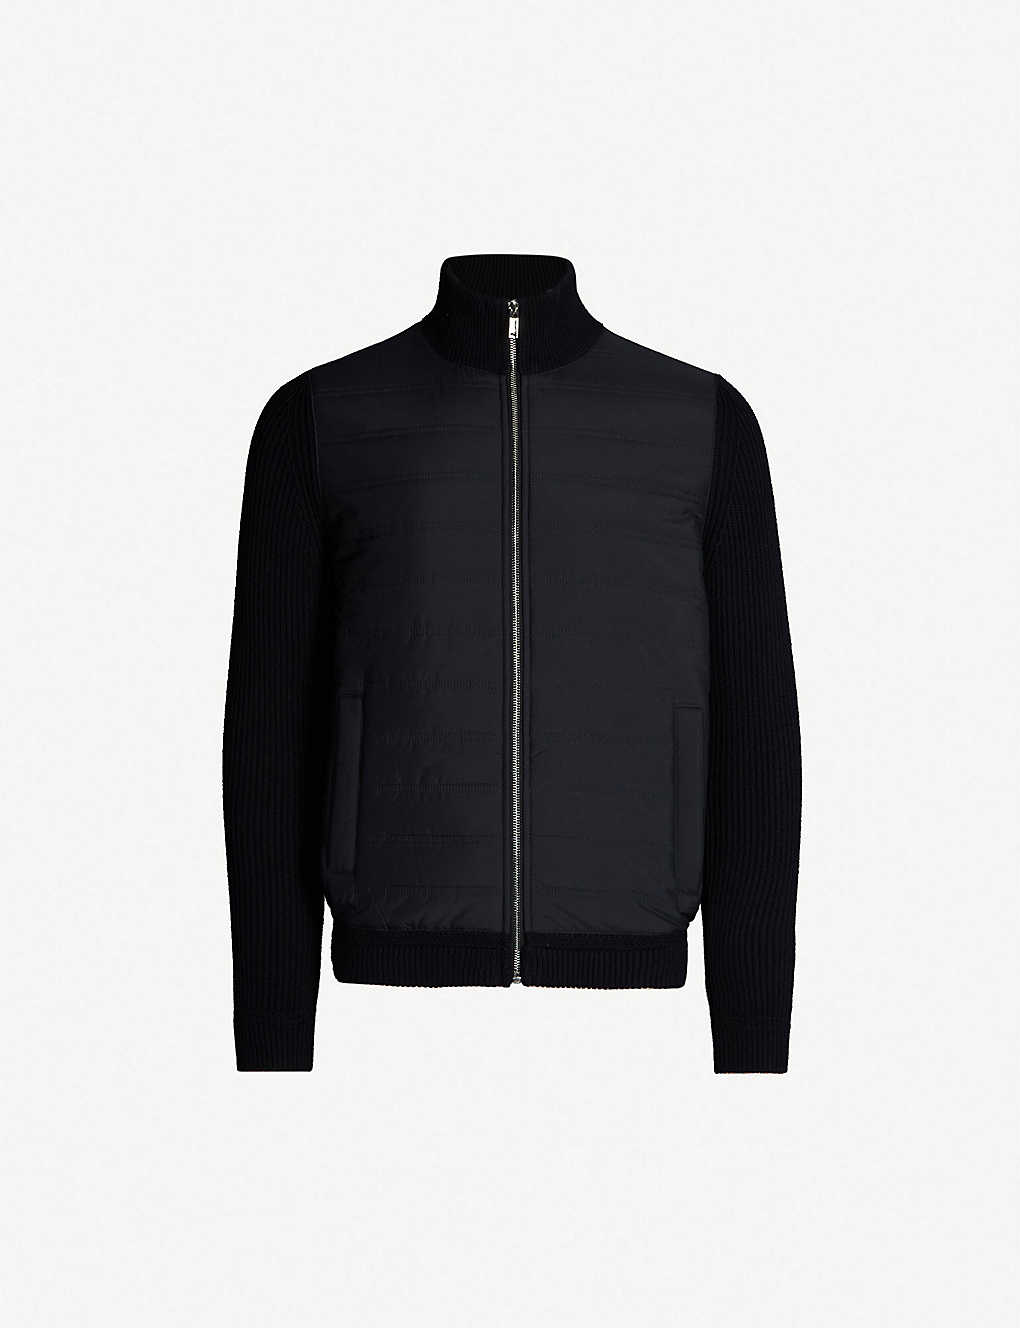 REISS: Trainer zip-up cotton-blend shell jacket